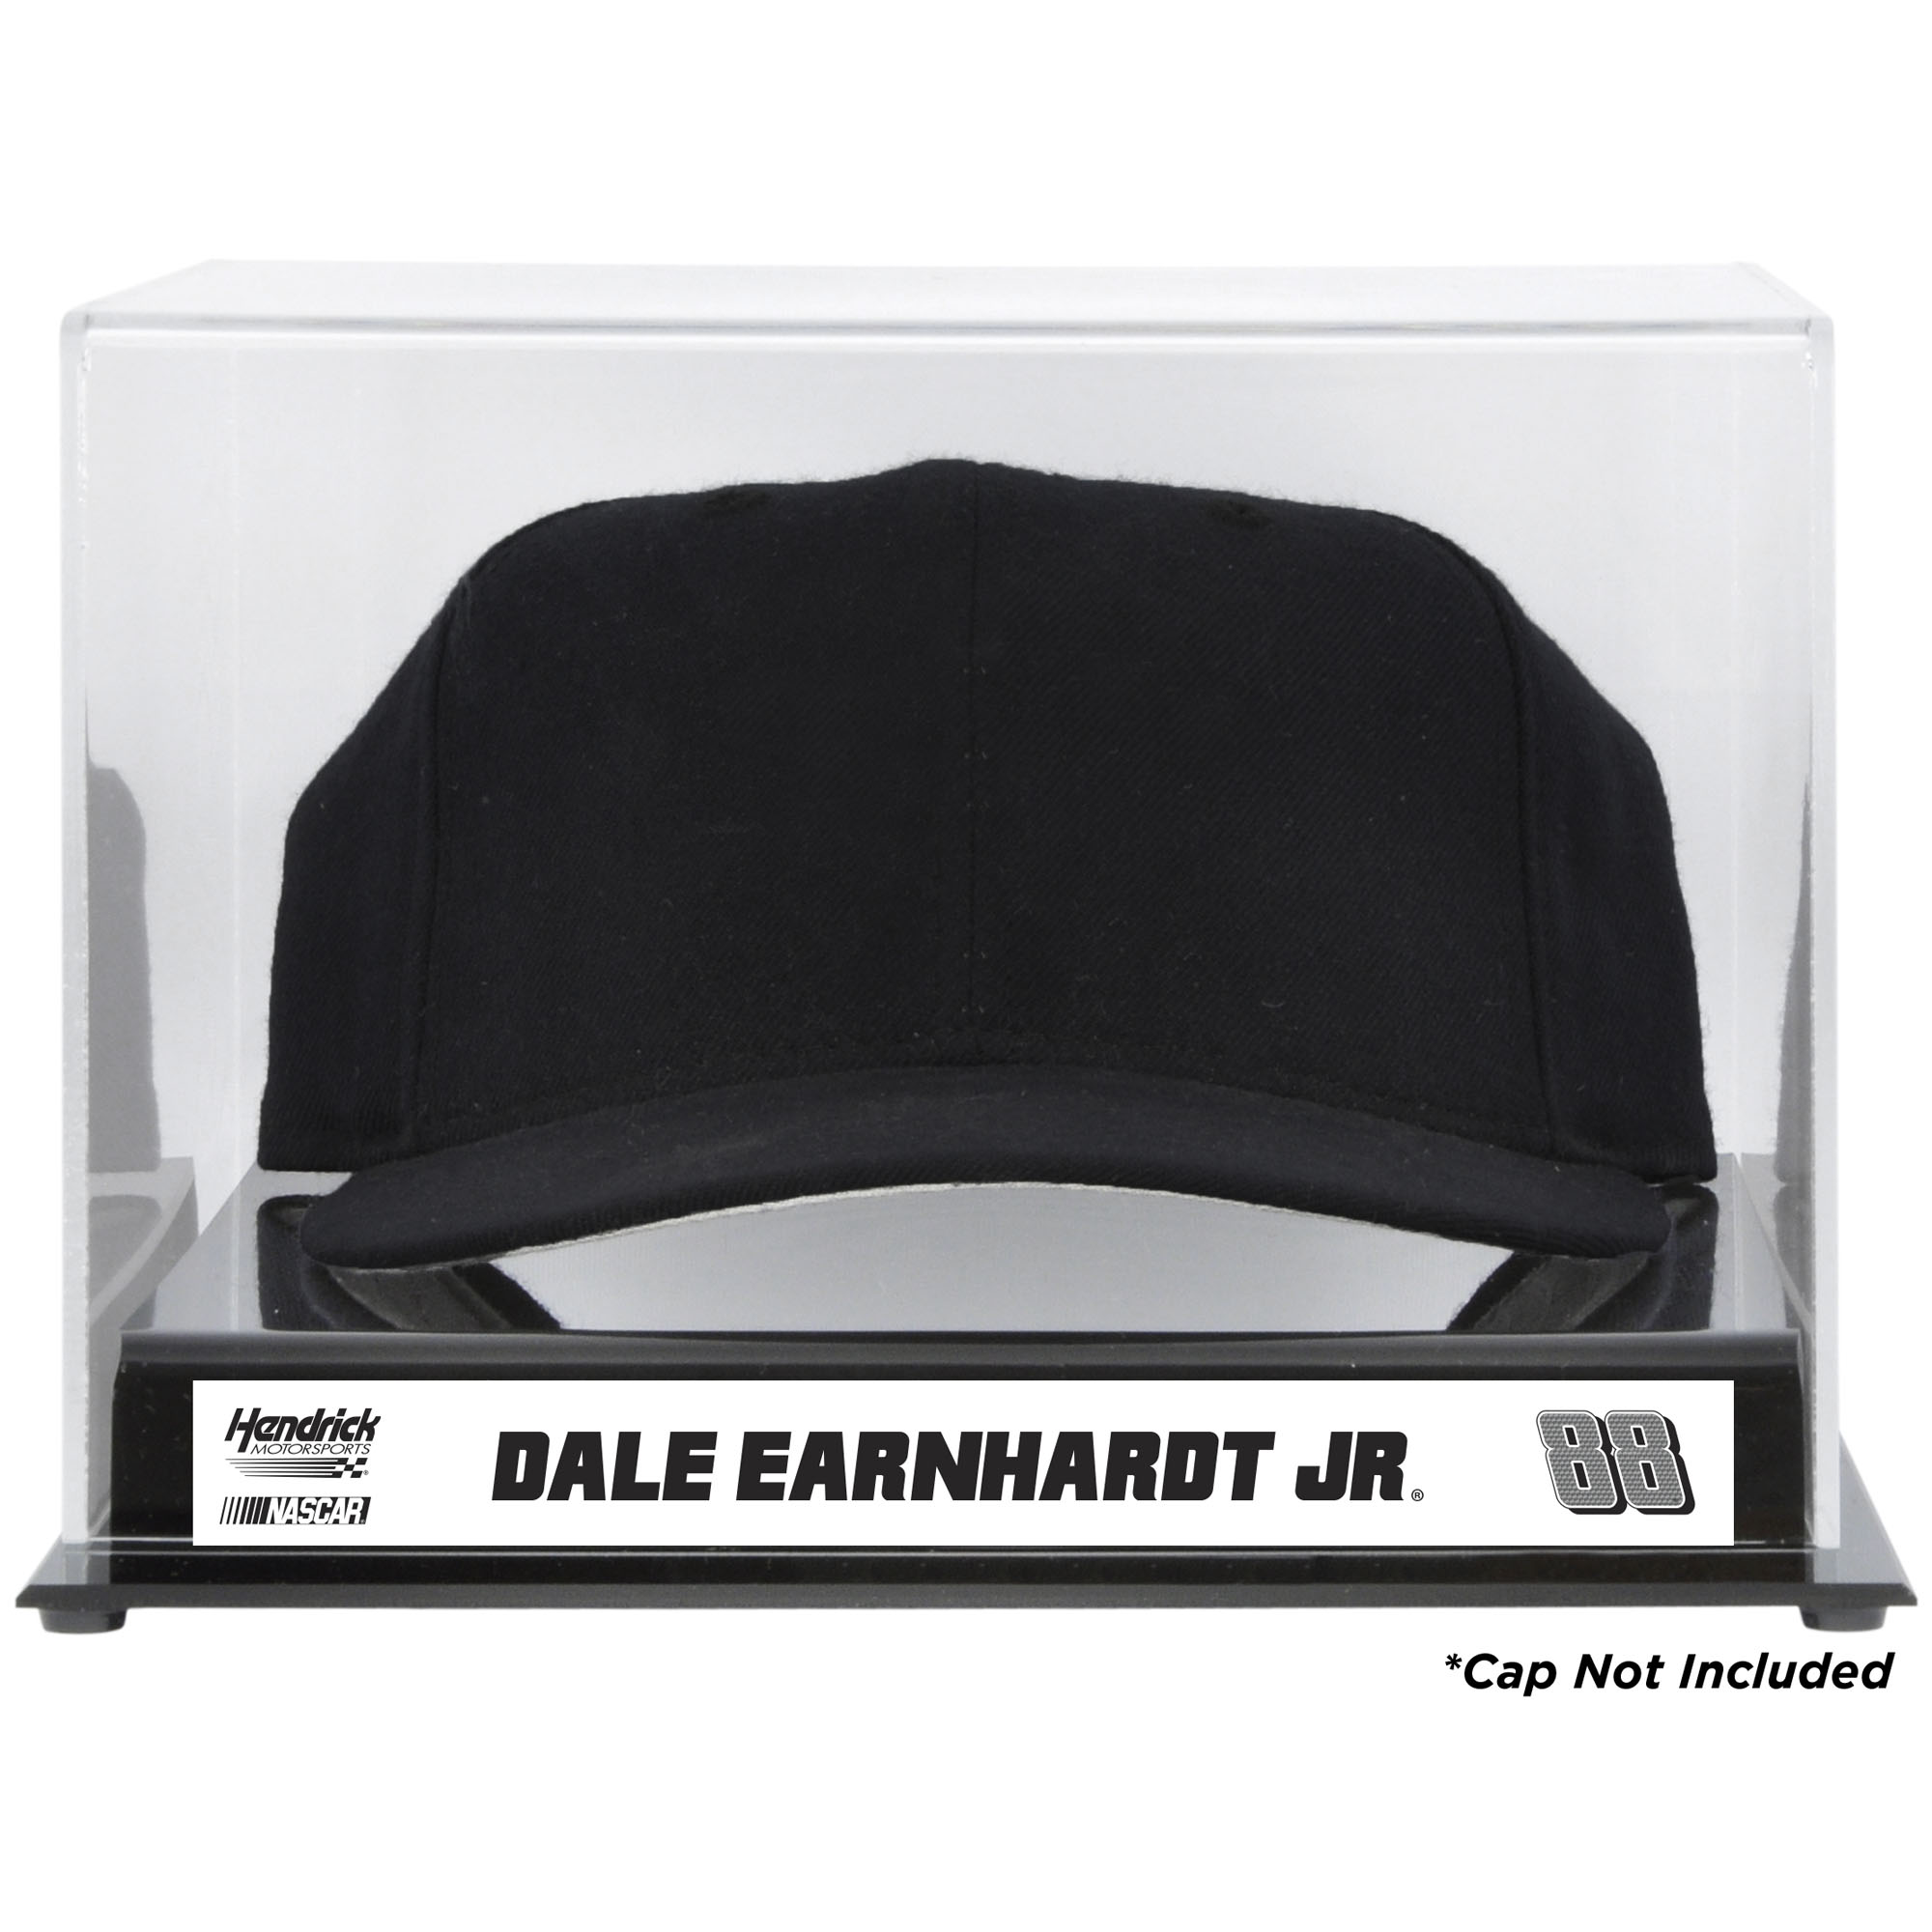 Dale Earnhardt Jr Fanatics Authentic #88 Hendrick Motorsports Sublimated Logo Acrylic Cap Case - No Size